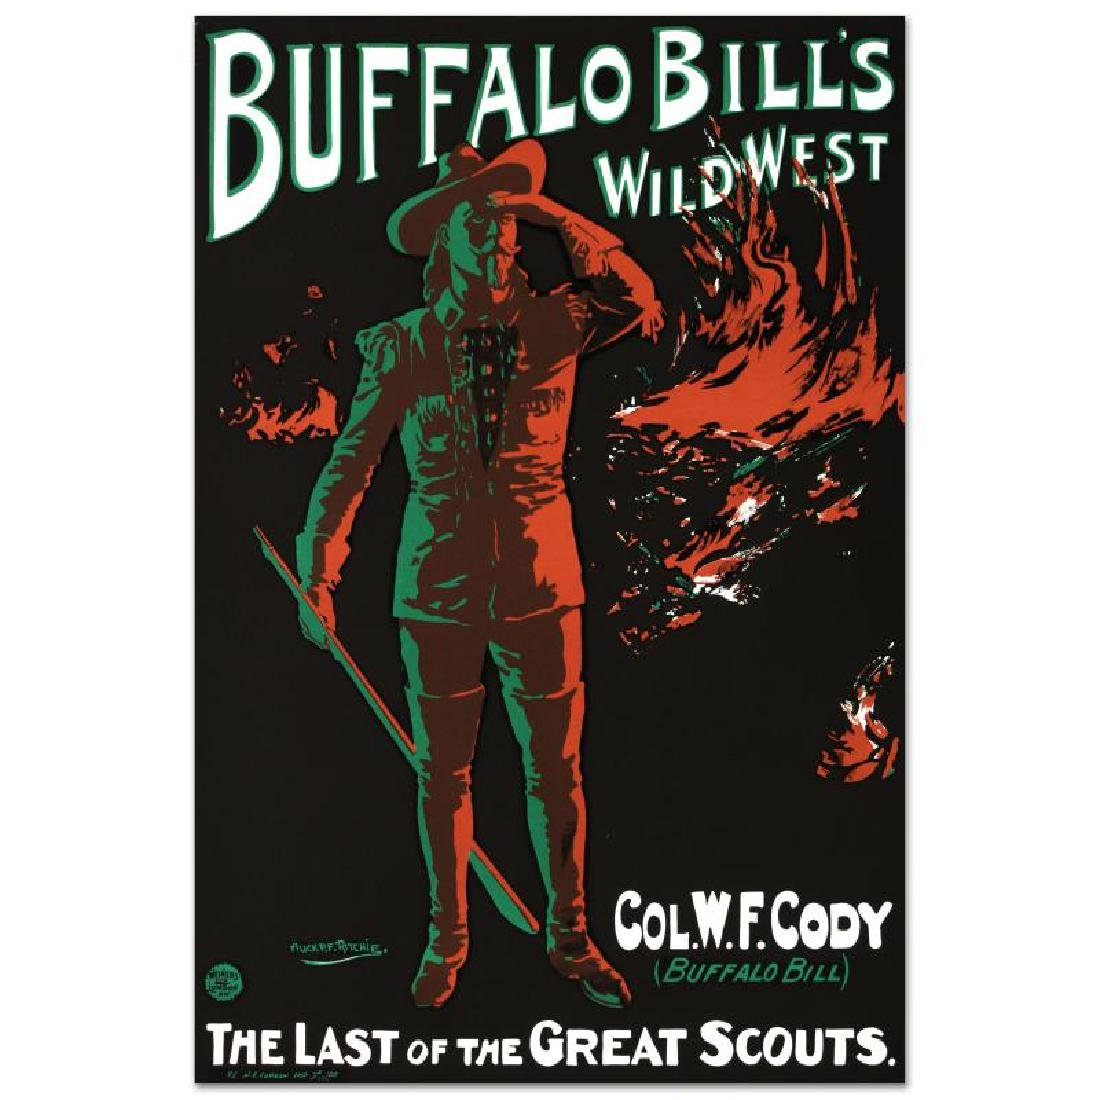 """Buffalo Bills Wild West"" Hand Pulled Lithograph by the"